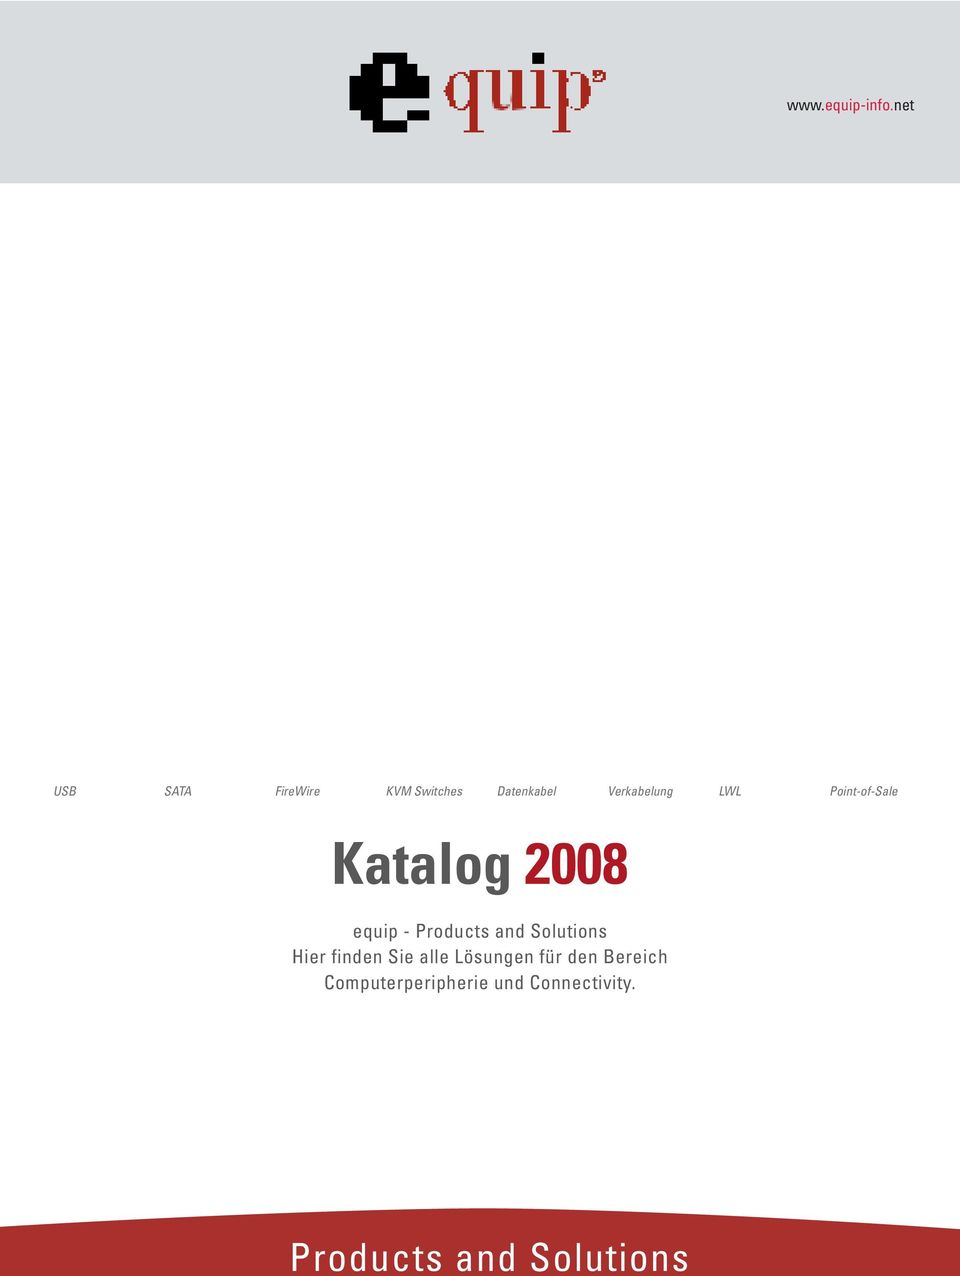 LWL Point-of-Sale Katalog 2008 equip - Products and